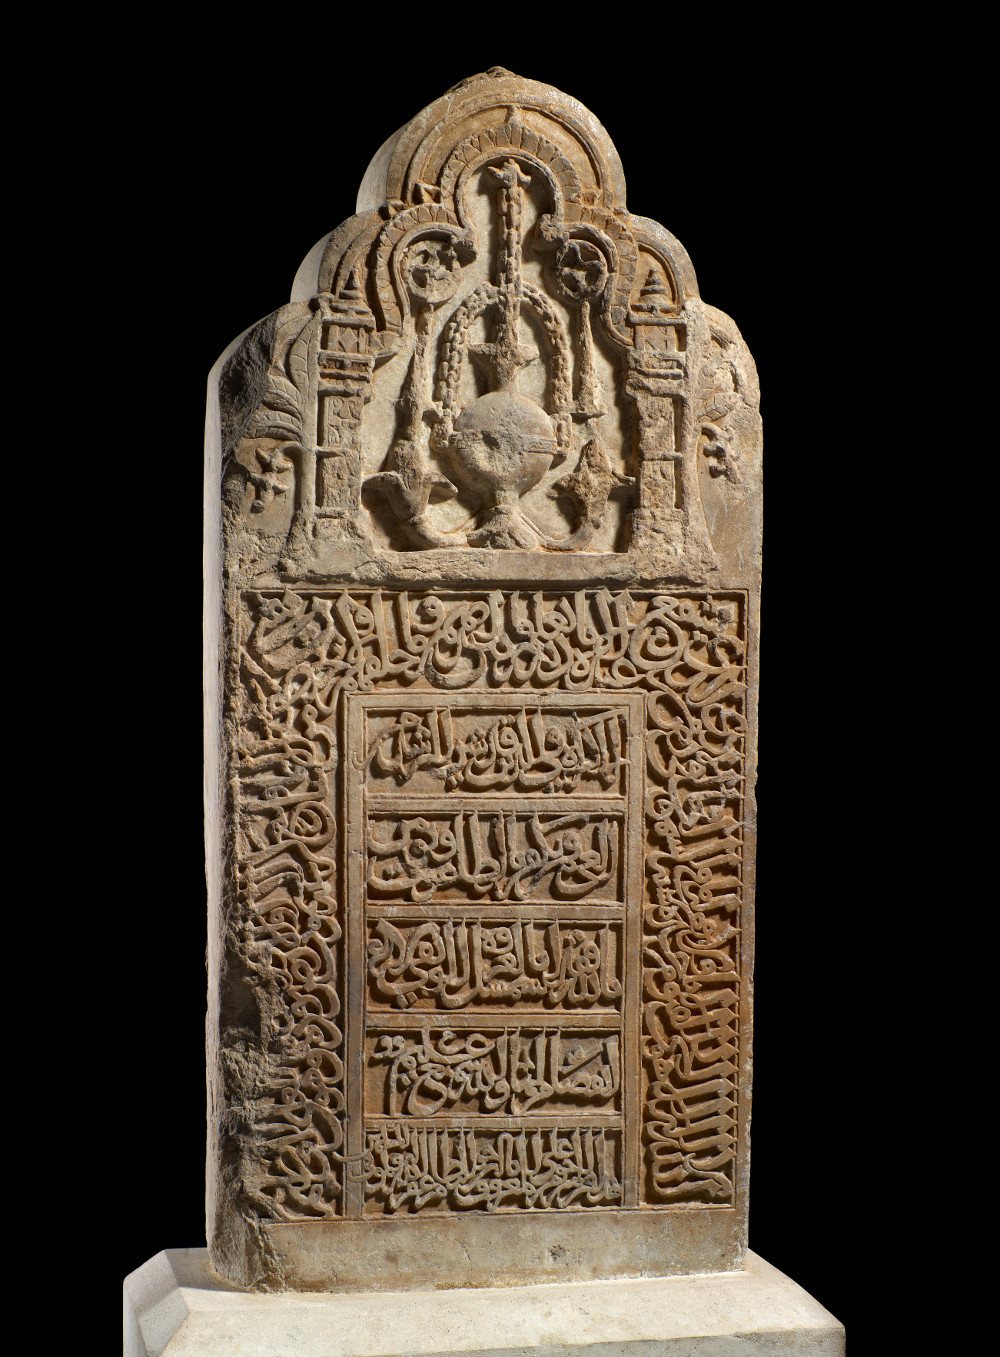 Islamic gravestone  - MarbleAD 1400-99Probably made in Cambay, India; found in Aden, YemenBritish Museum, donated by Messrs Newman, Hunt & Christopher This gravestone in the shape of a prayer niche was found 3,000 kilometres away from where it was made. It was initially carved in the port city of Cambay in Gujarat and possibly personalised later in Yemen with the name of the deceased: Abu'l-Hassan. Indian-produced tombstones were desirable to Muslims from as far away as the Arabian Peninsula, East Africa and Indonesia. Long journeys across the Indian Ocean meant gravestones could take months or even years to arrive.